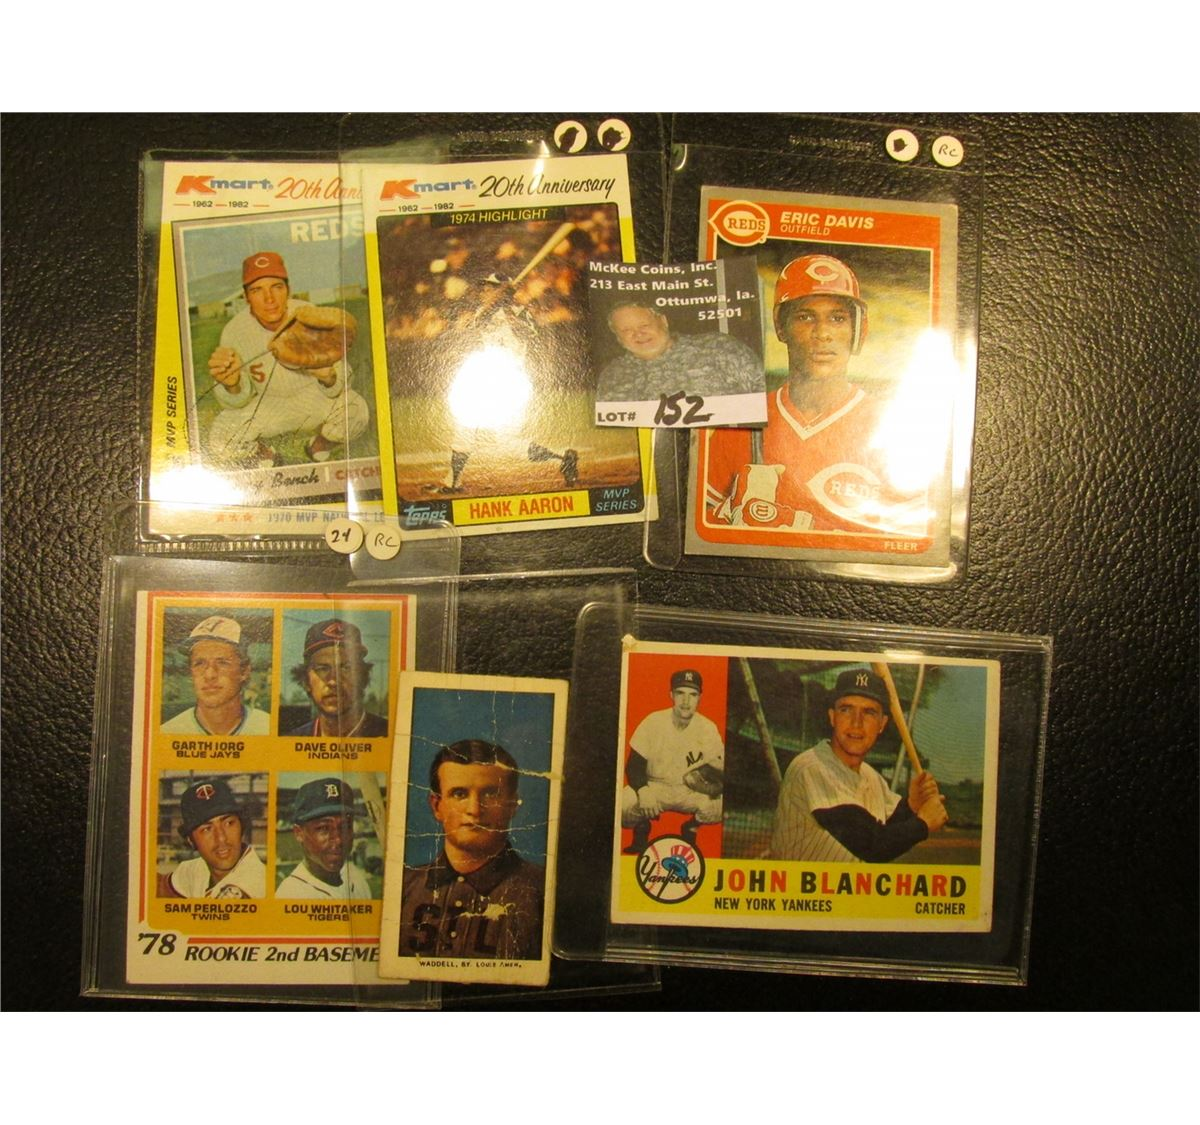 1982 Topps Johnny Bench Mvp Kmart 20th Anniversary Card With Original Autograph 5 Other All S